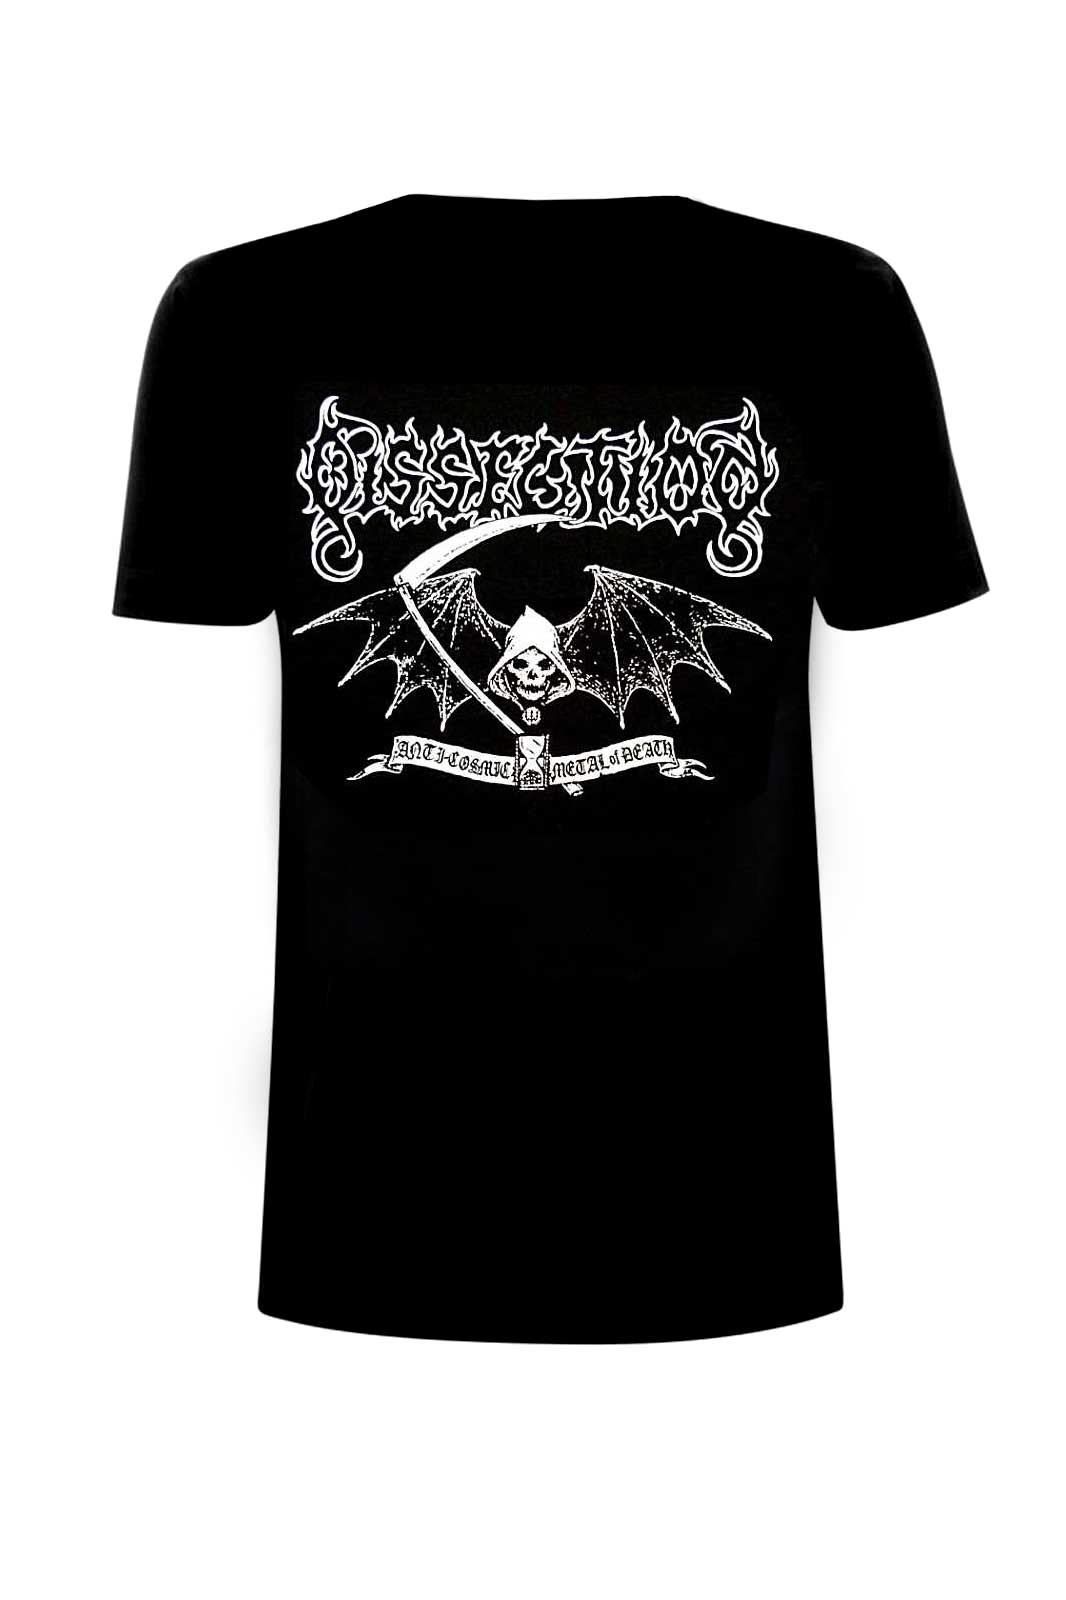 Dissection Reaper Tee Front